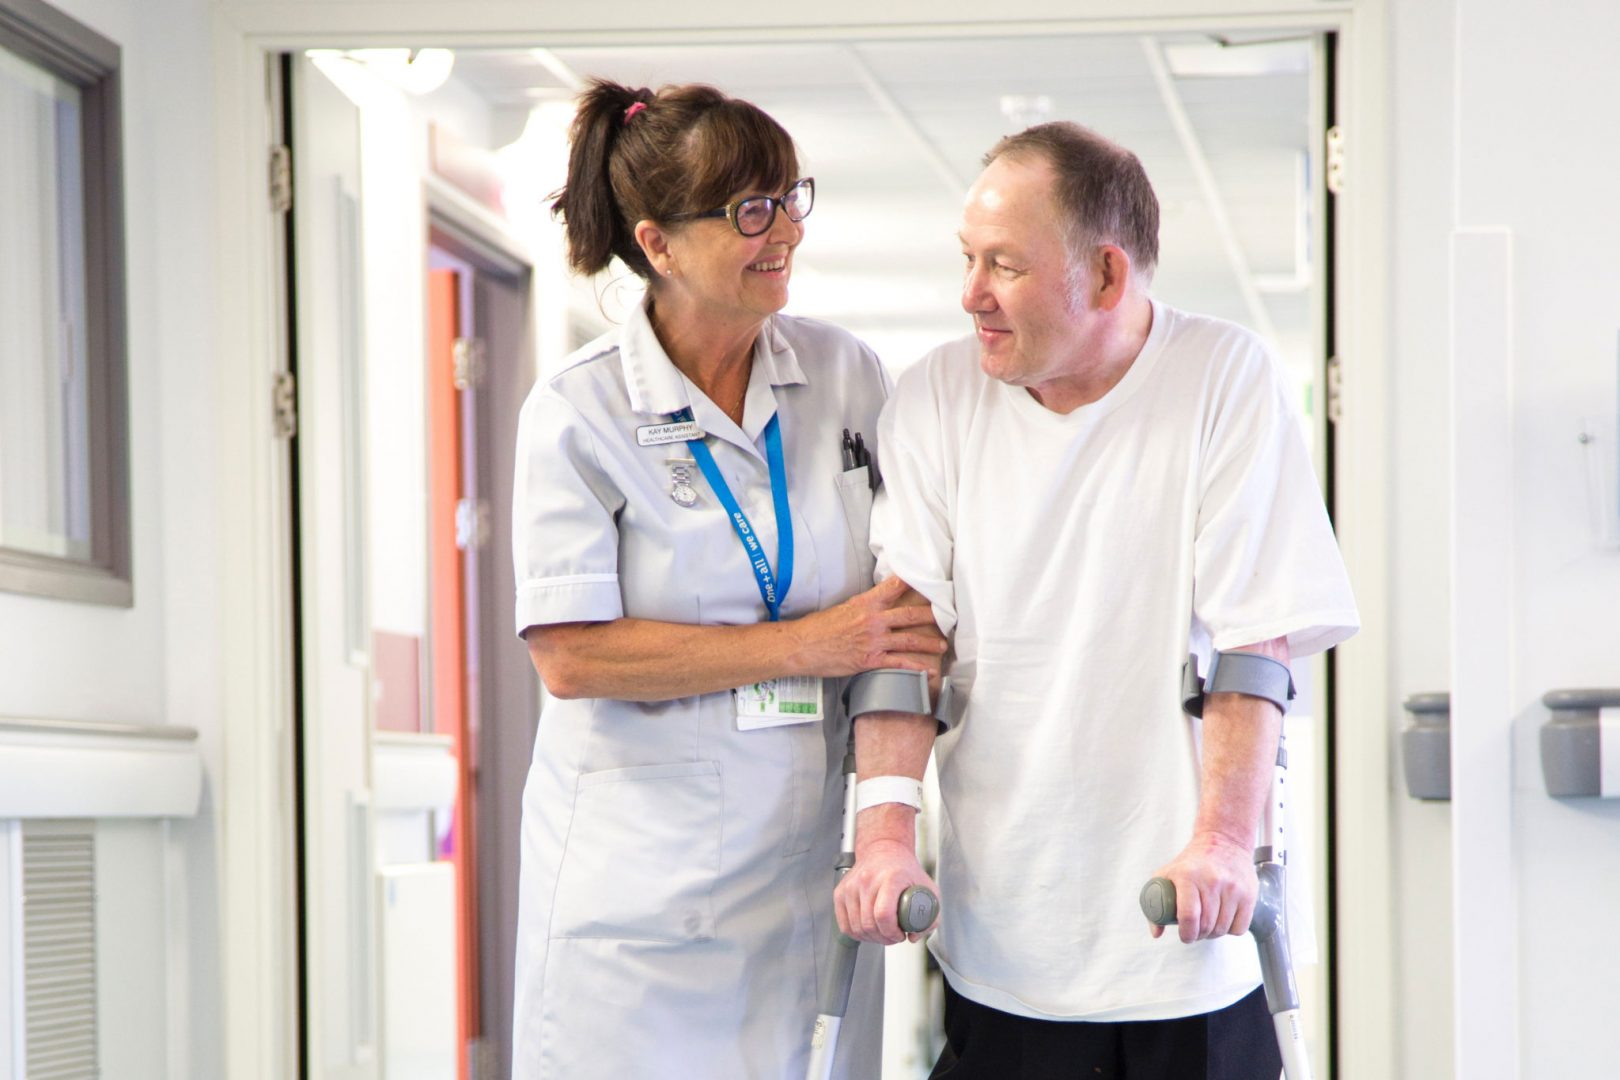 Our Staff: Royal Cornwall Hospitals NHS Trust